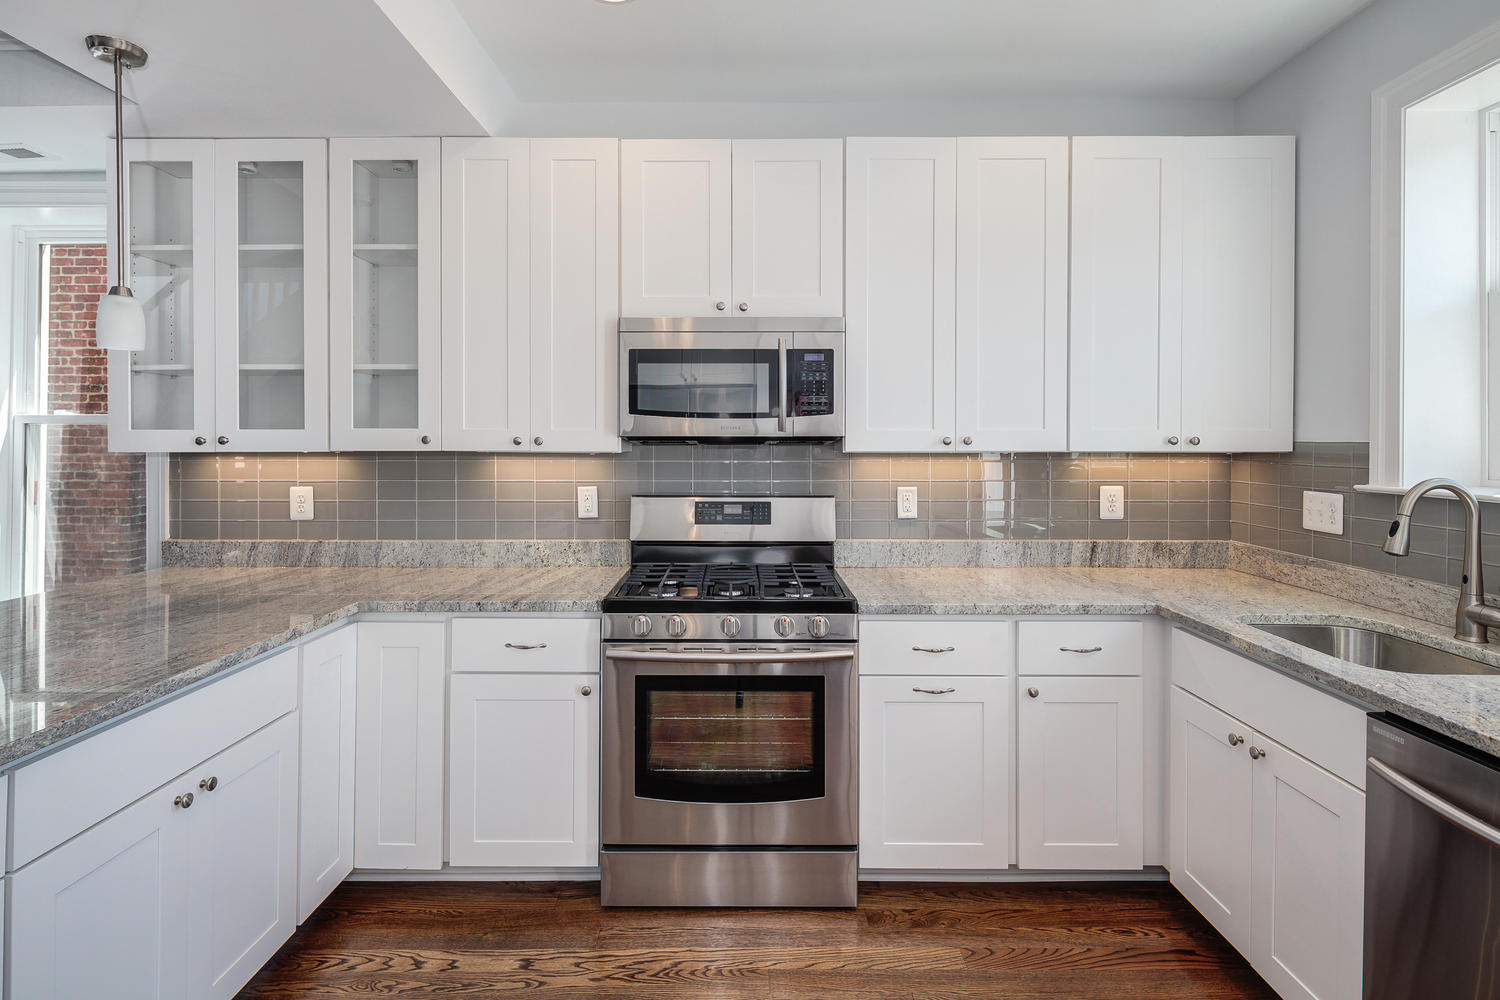 Elite White Kitchen Tile Backsplashes — Your Money Bus Design : Diy throughout Grey And White Kitchen Cabinets